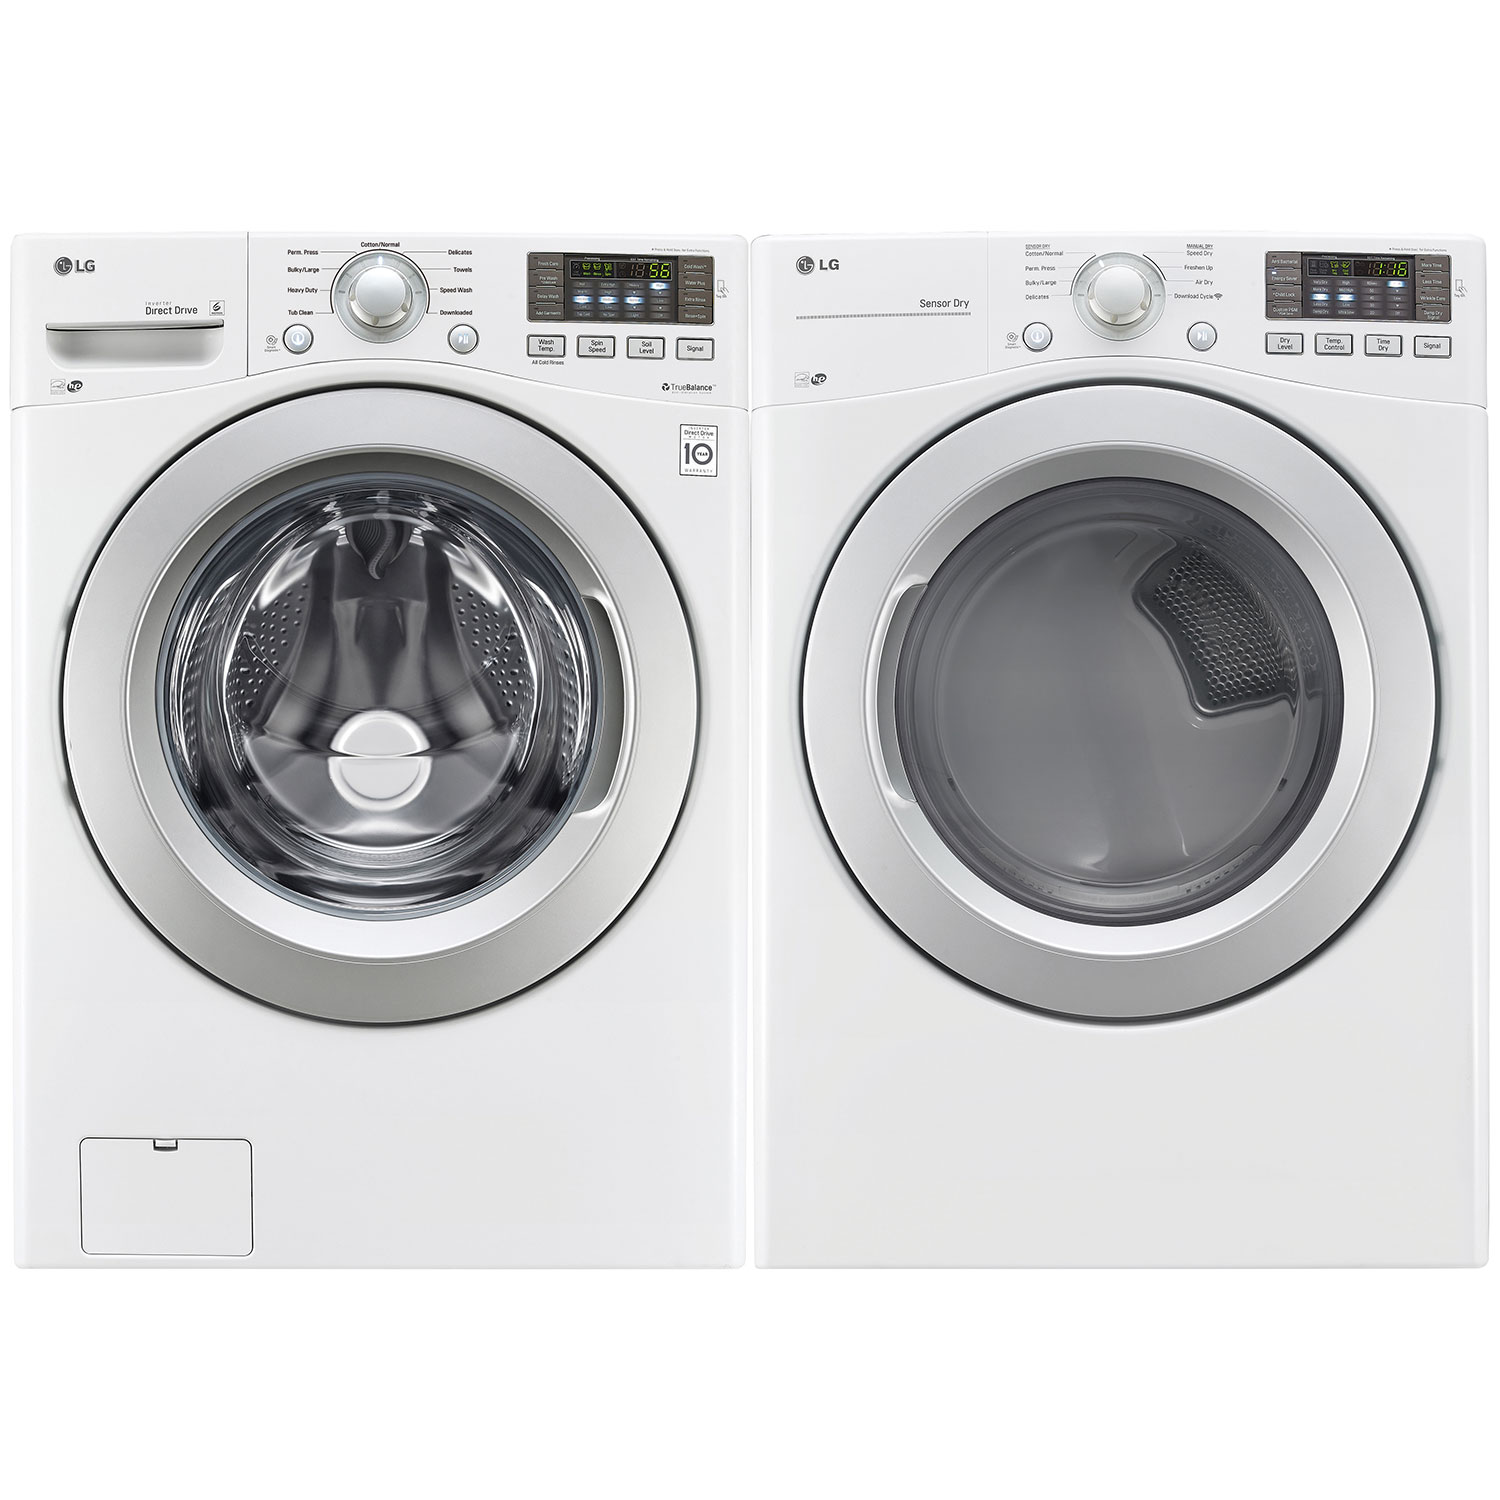 Washer and dryer sets on sale at sears washer and dryer Sears washer and dryer